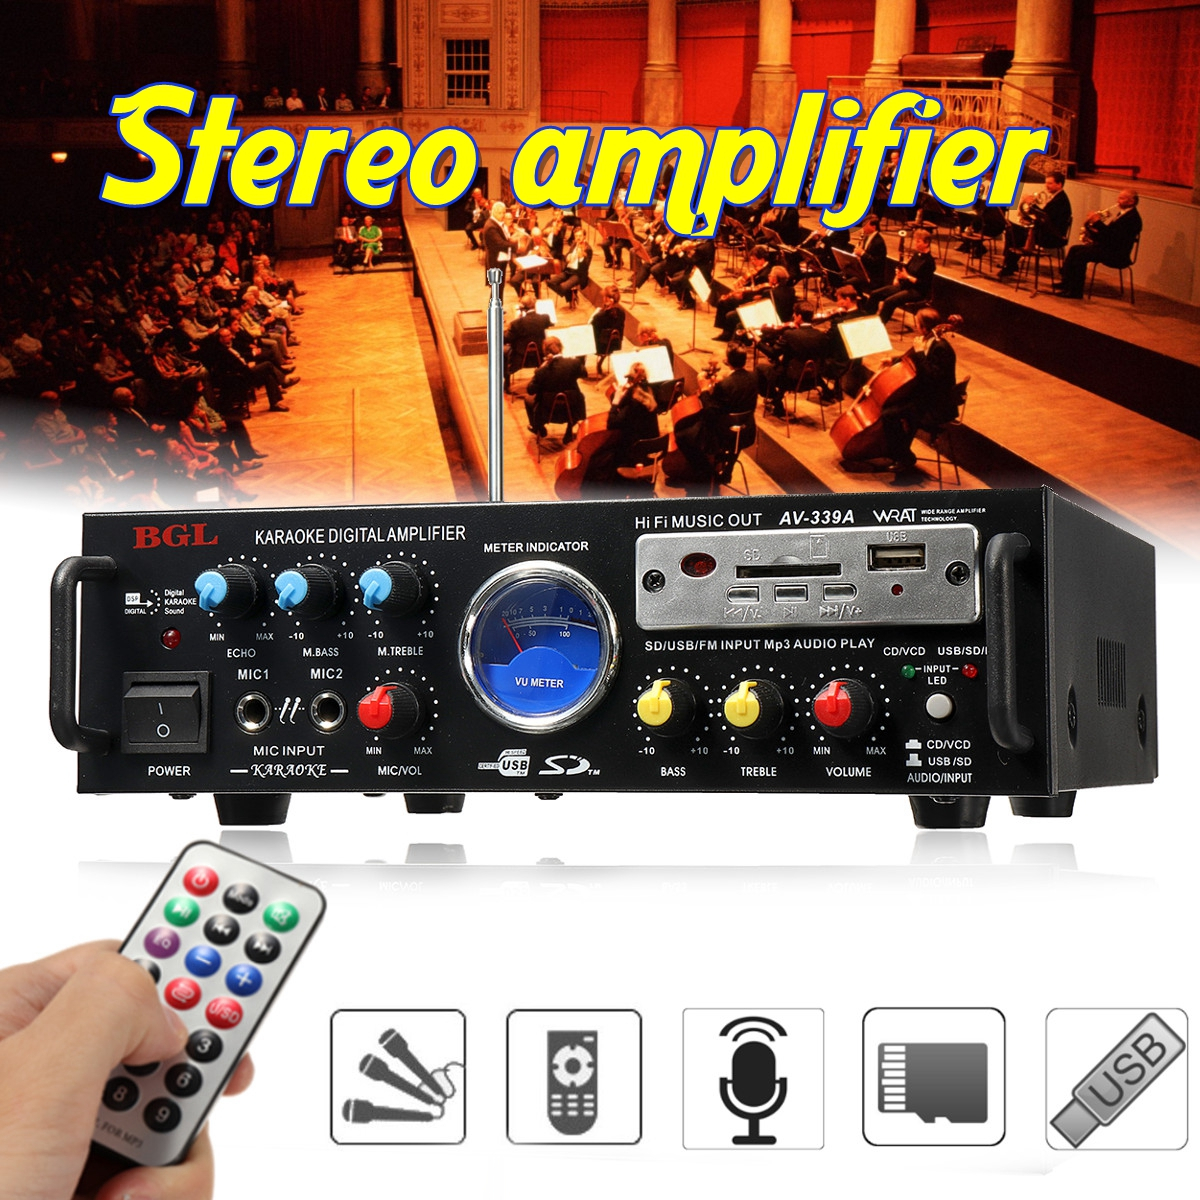 80w 12v 220v 50hz 5 1 channel equalizer stereo power amplifier support sd card tf card u disk home theater amplifiers audio [ 1200 x 1200 Pixel ]